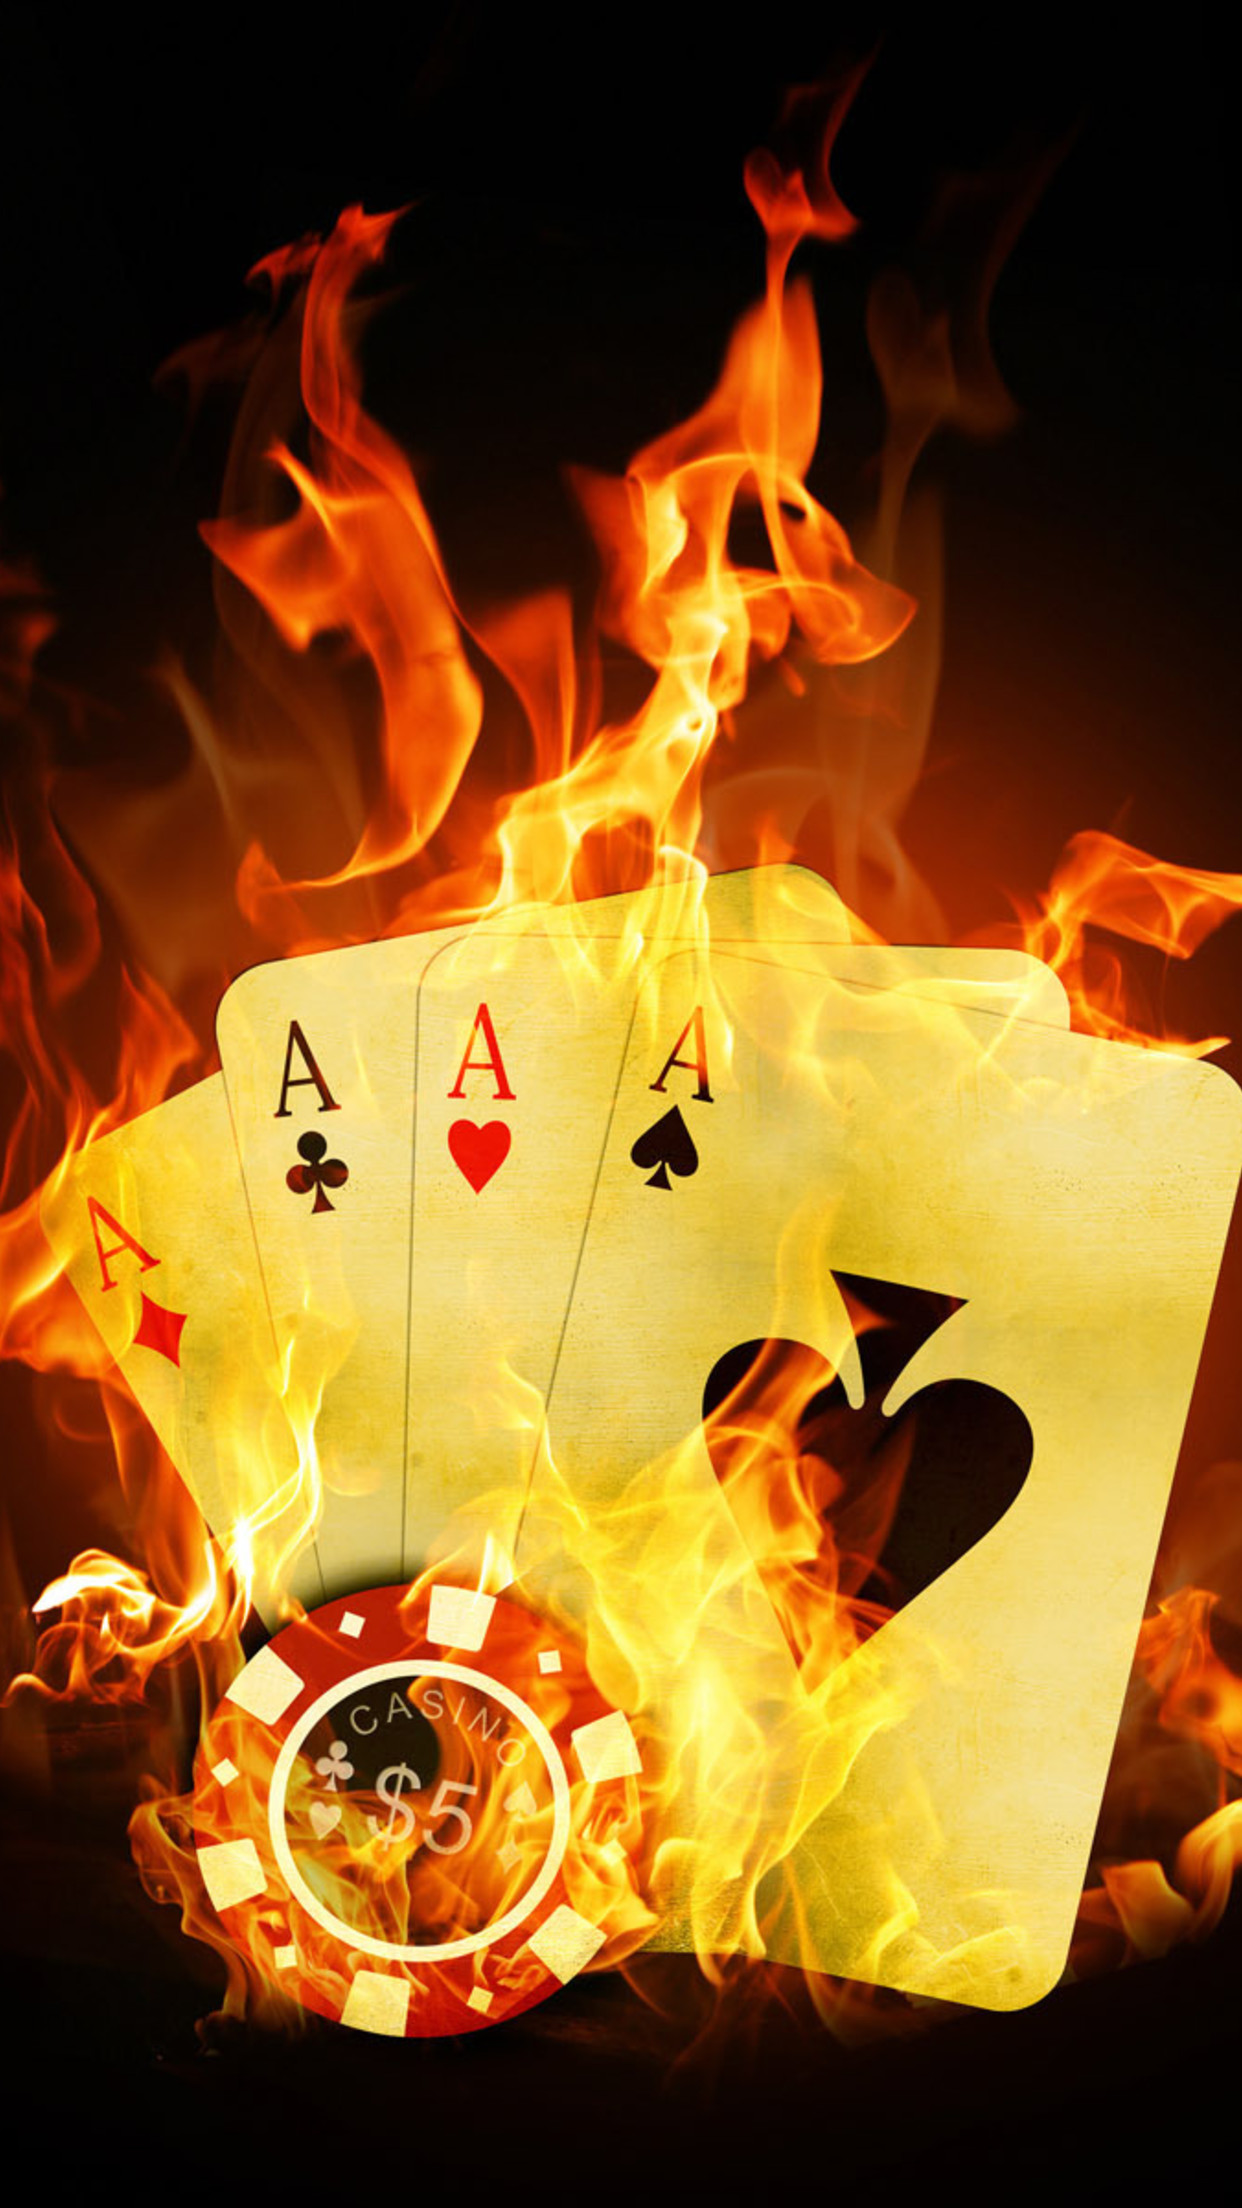 card fire 3Wallpapers iPhone Parallax Les 3Wallpapers iPhone du jour (19/02/2016)